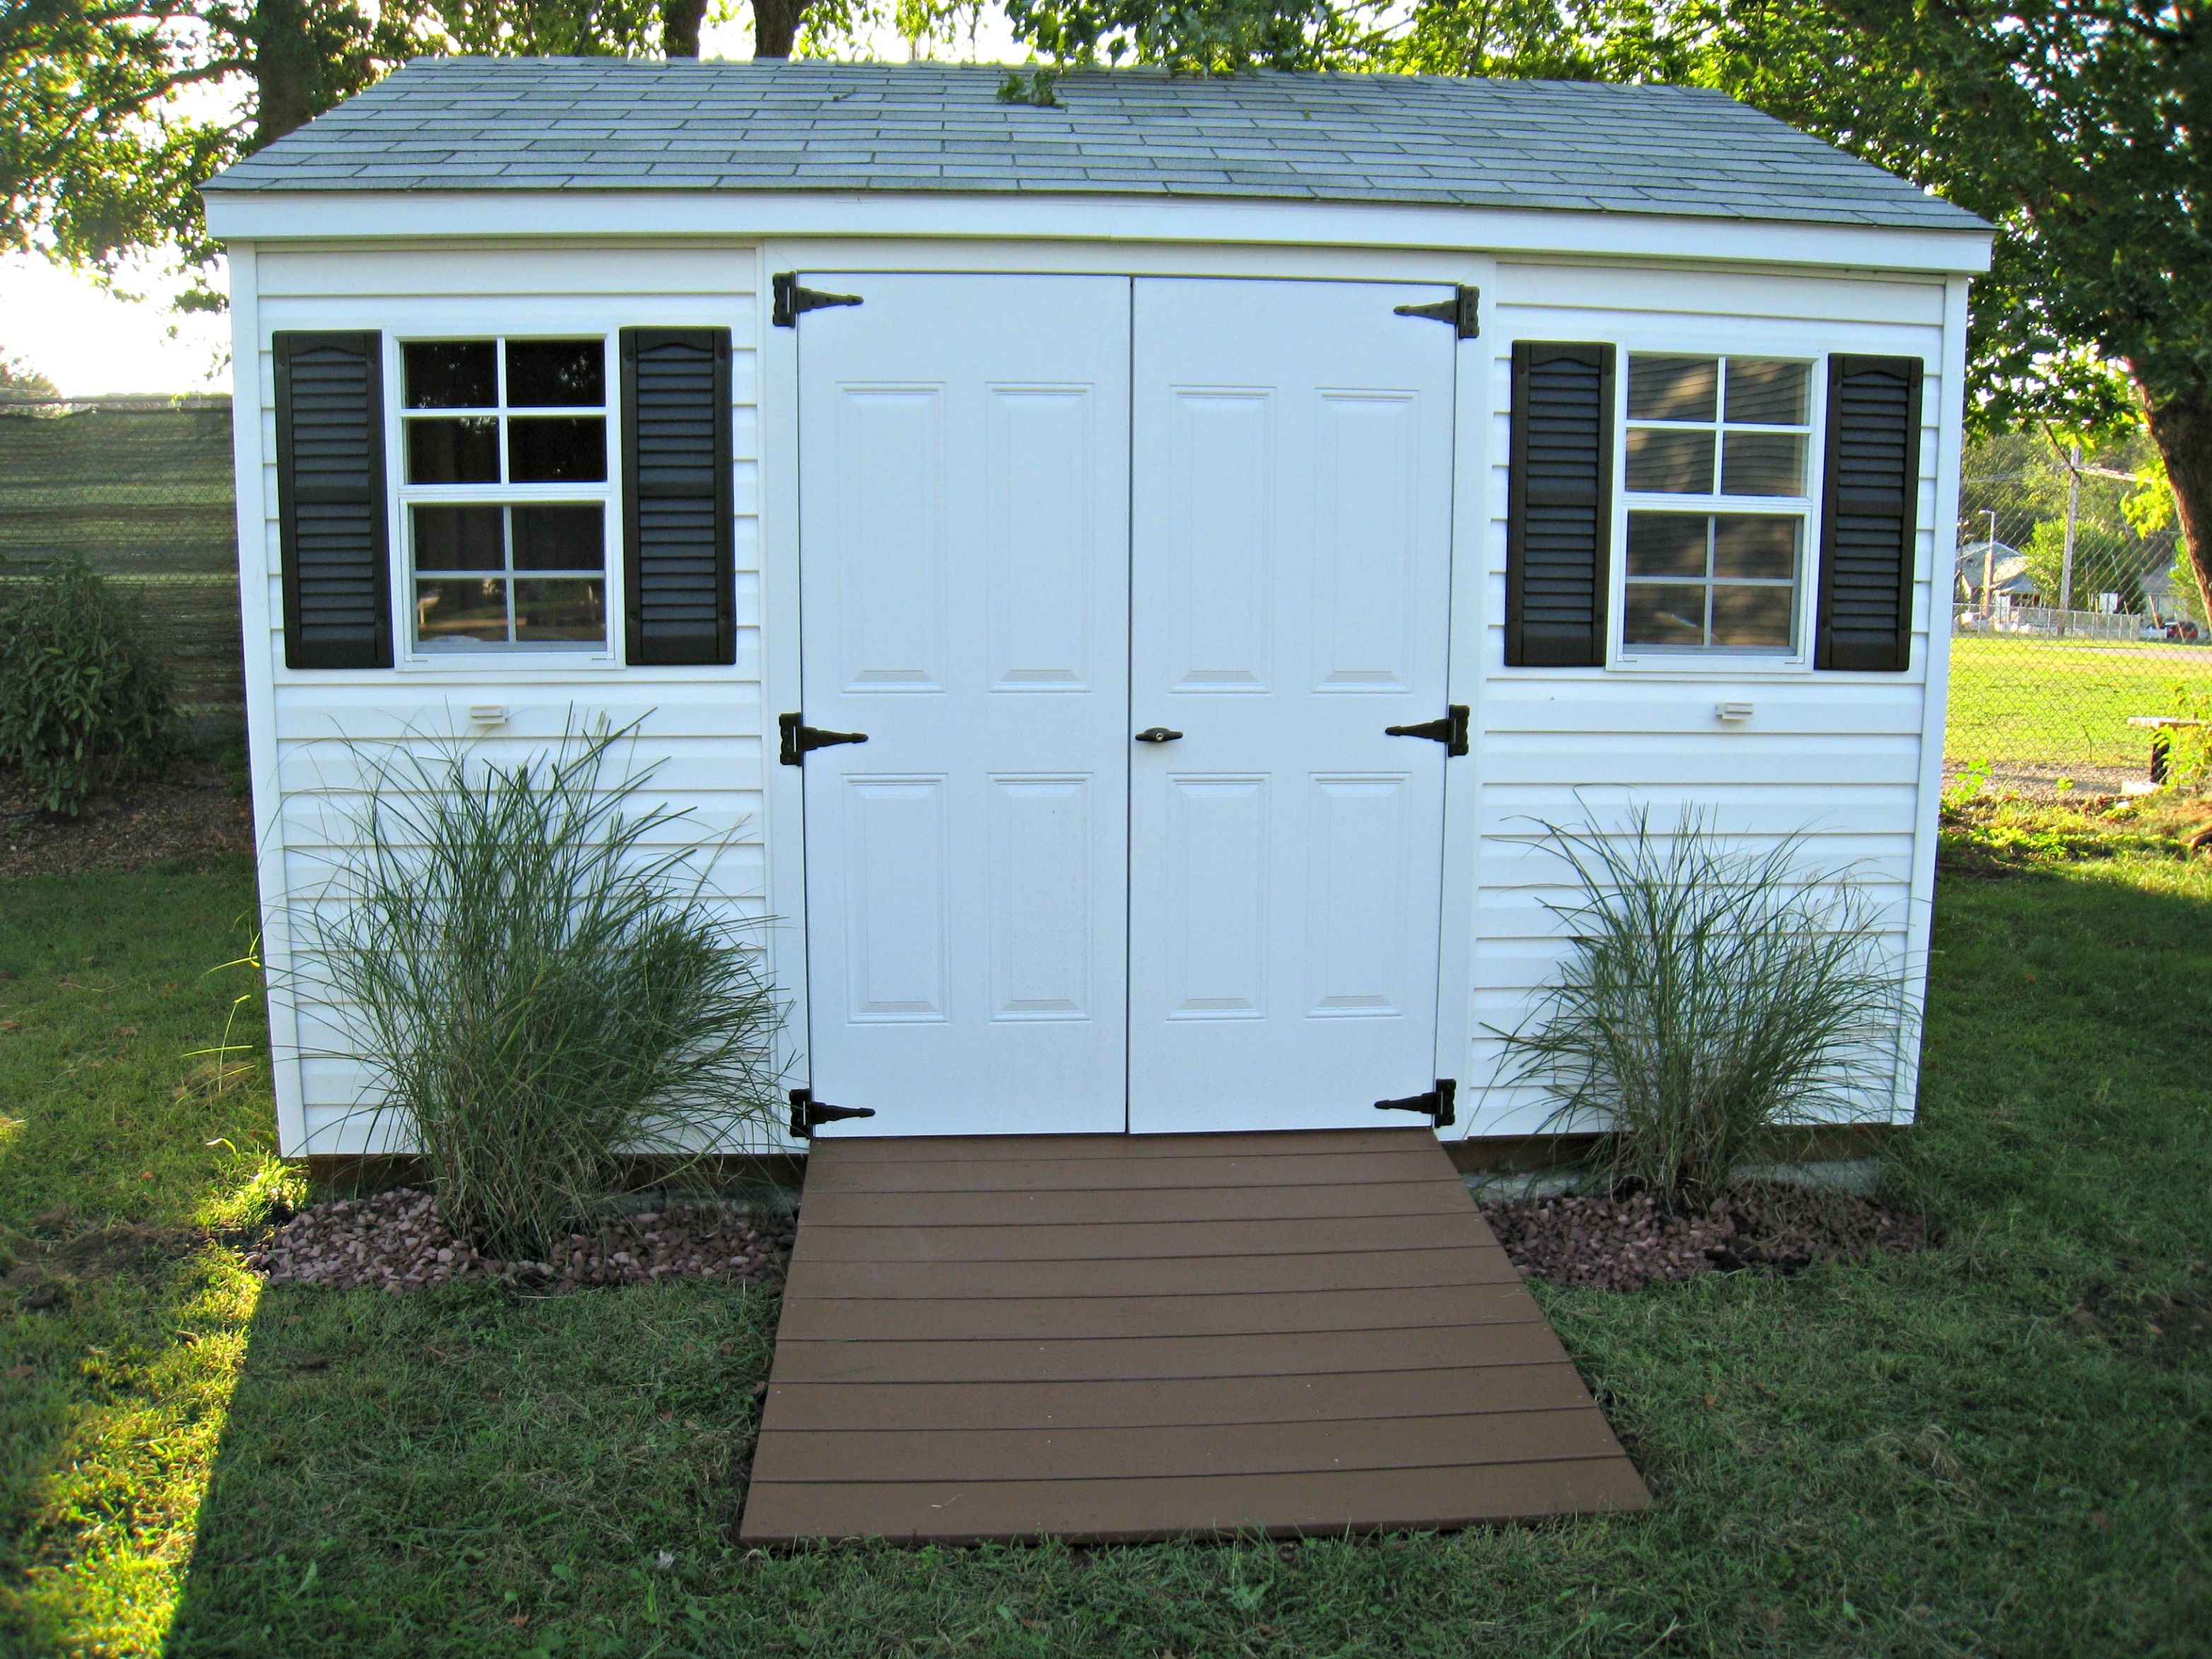 Ramp to storage shed in chocolate with decorative grasses in front